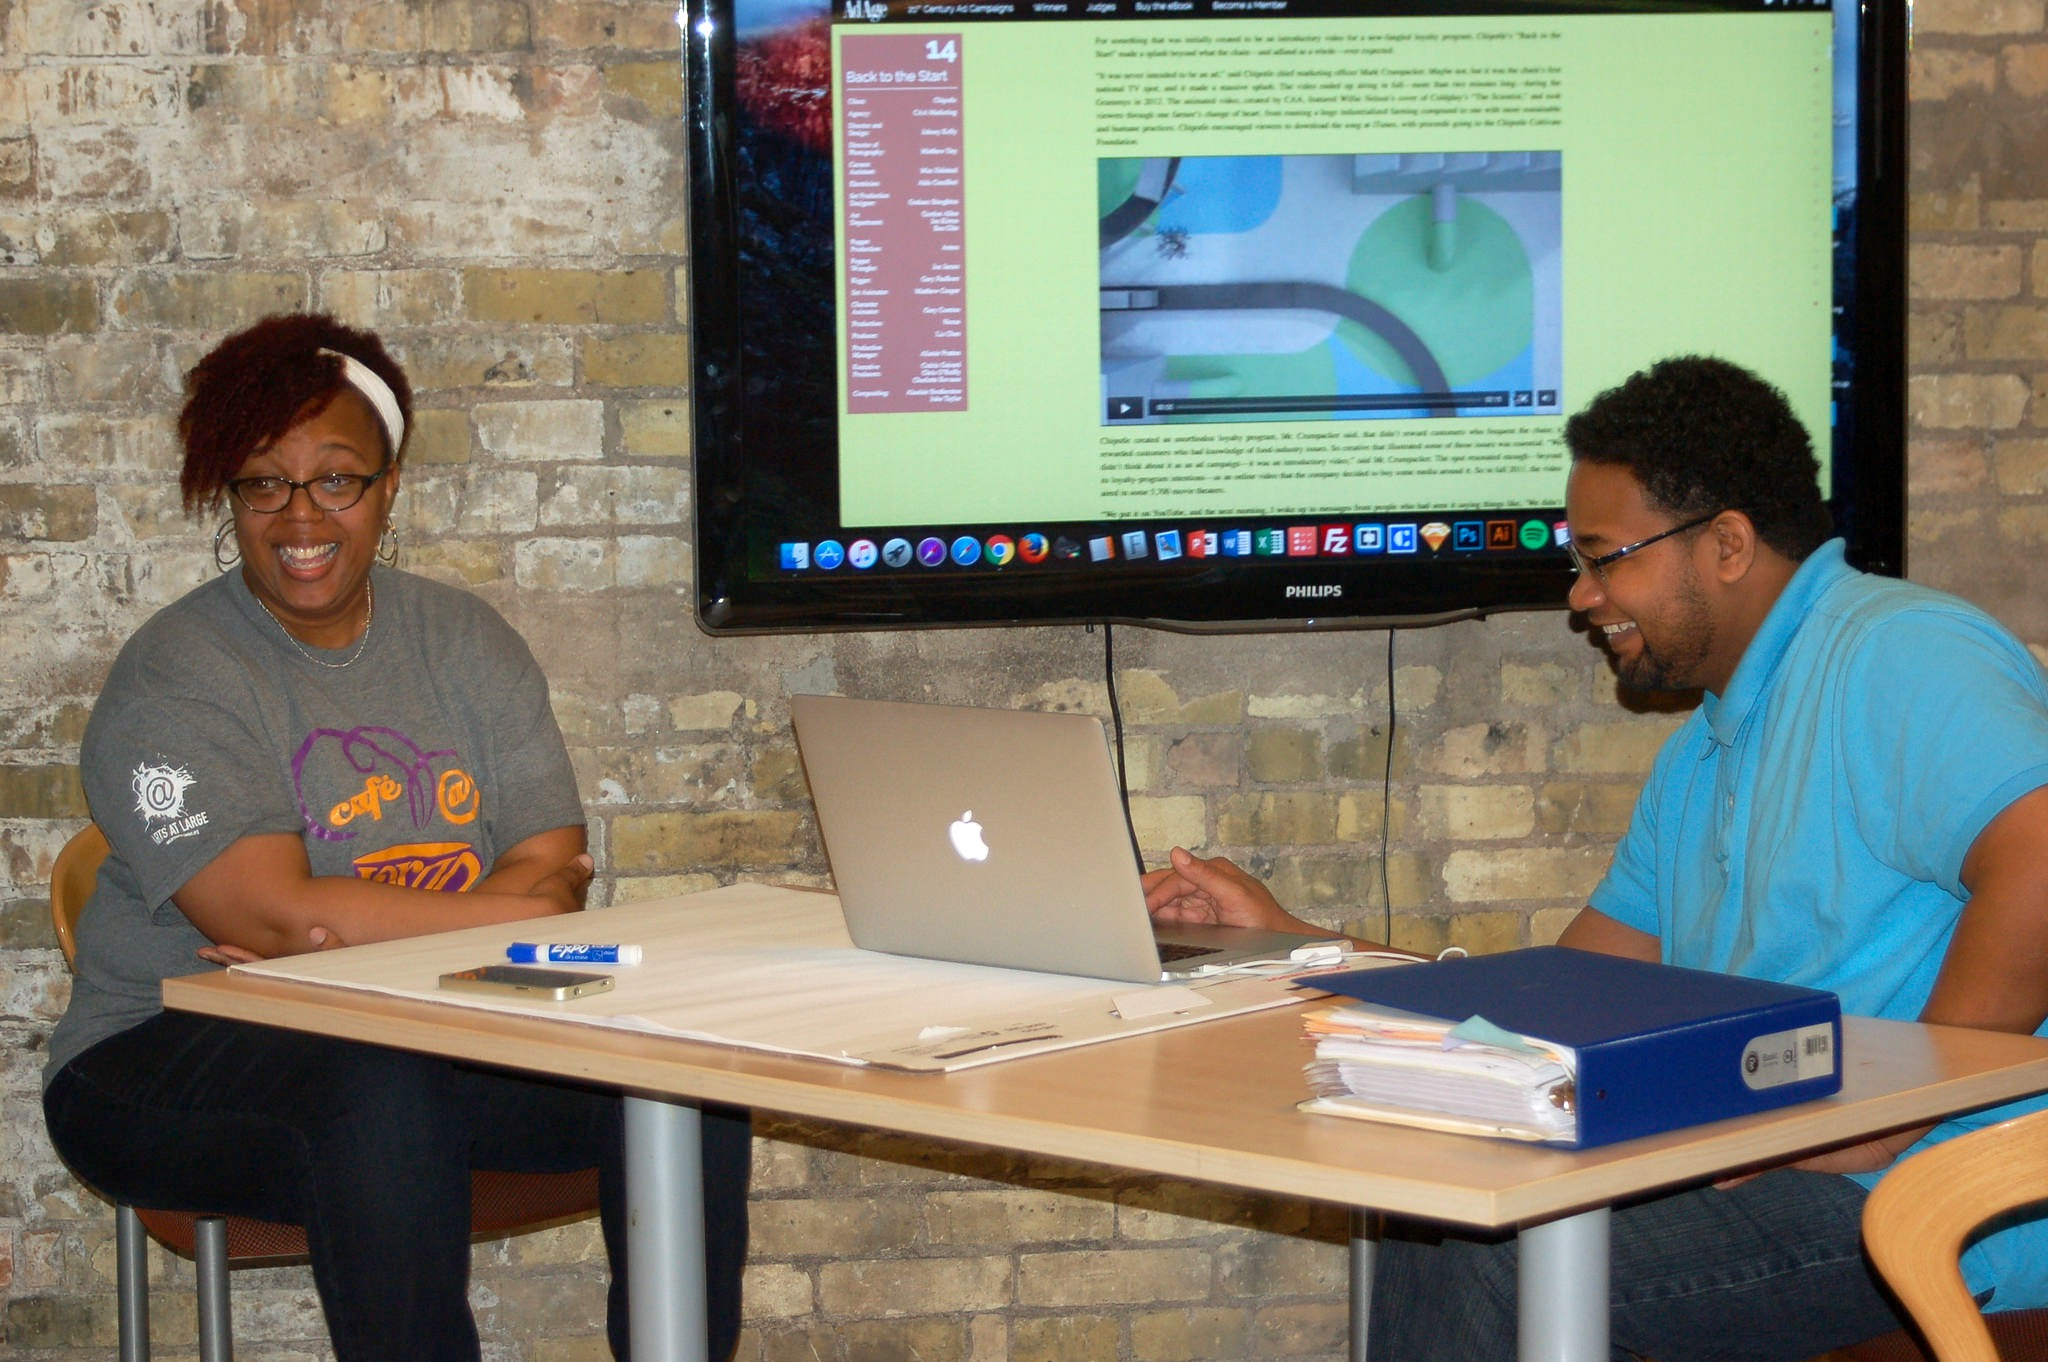 MKEGrind owners Sylvia and Thomas Wilson lead a workshop on branding for students at the Arts @ Large Gallery. (Photo by Andrea Waxman)